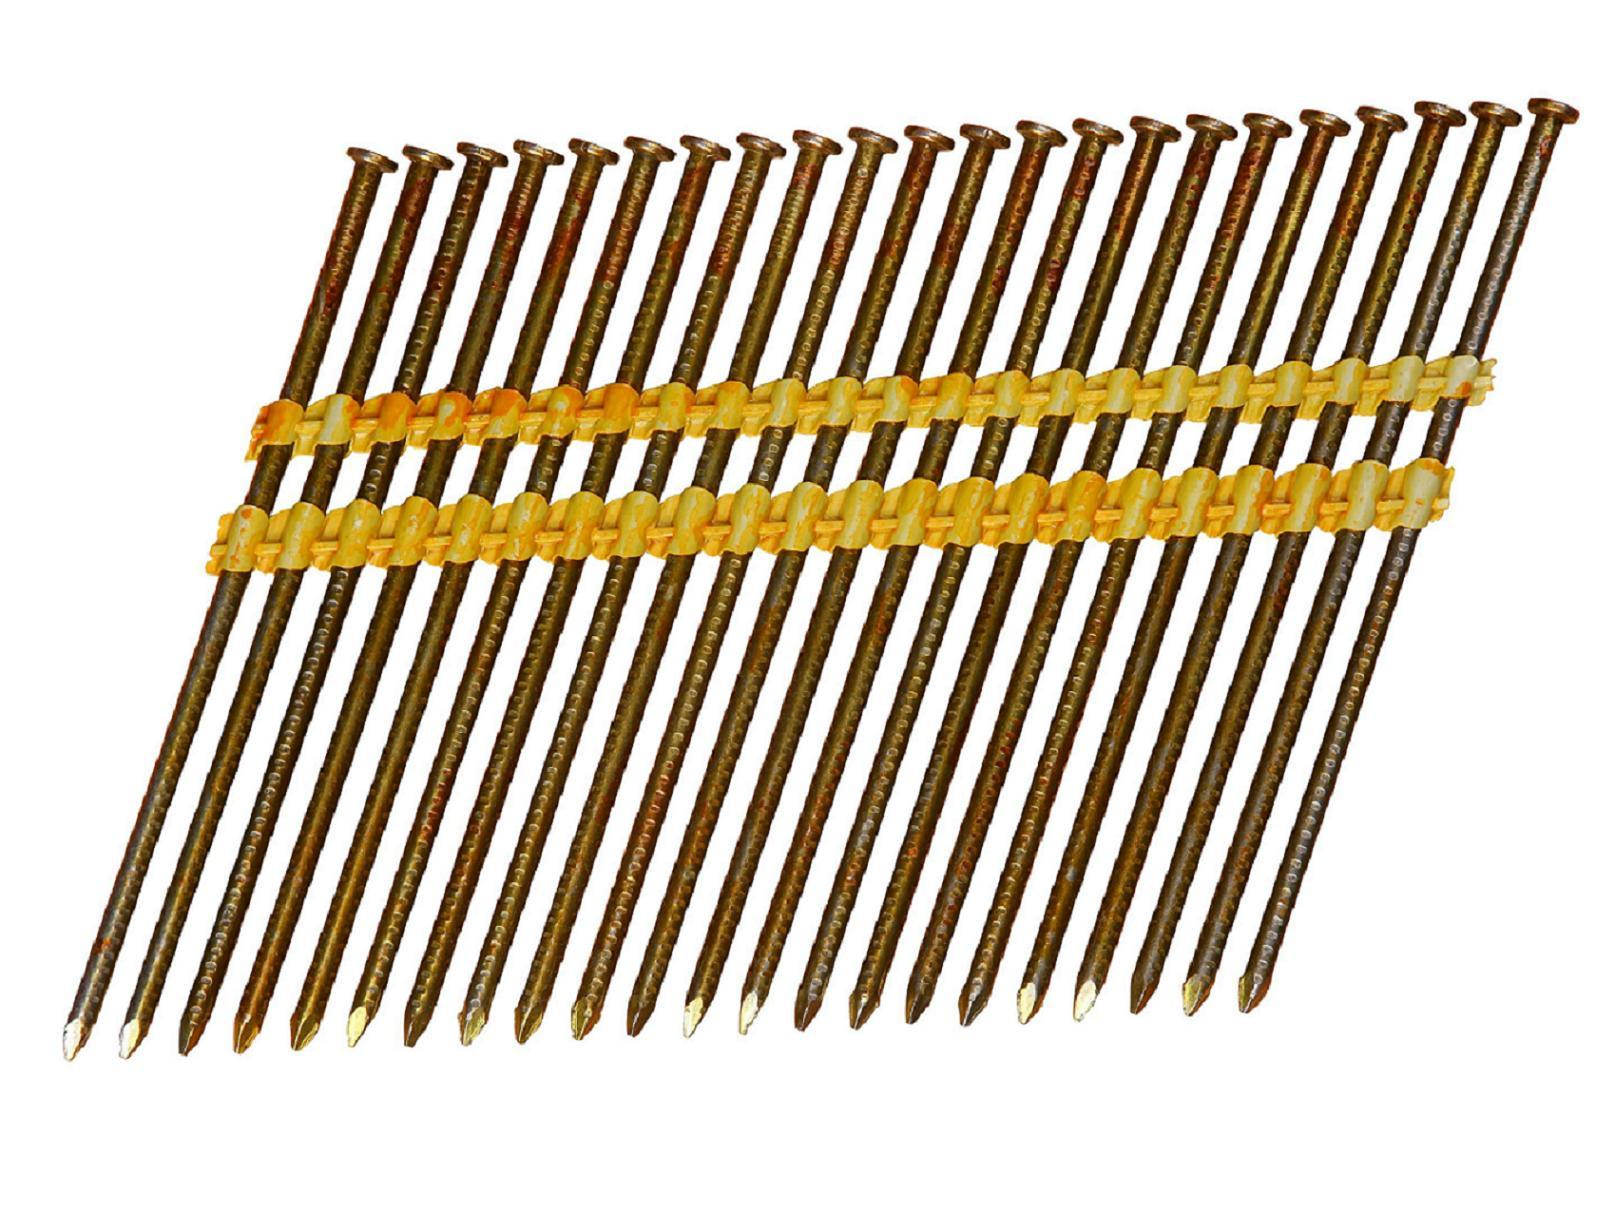 4.6 X 160mm Plastic Strip Nails